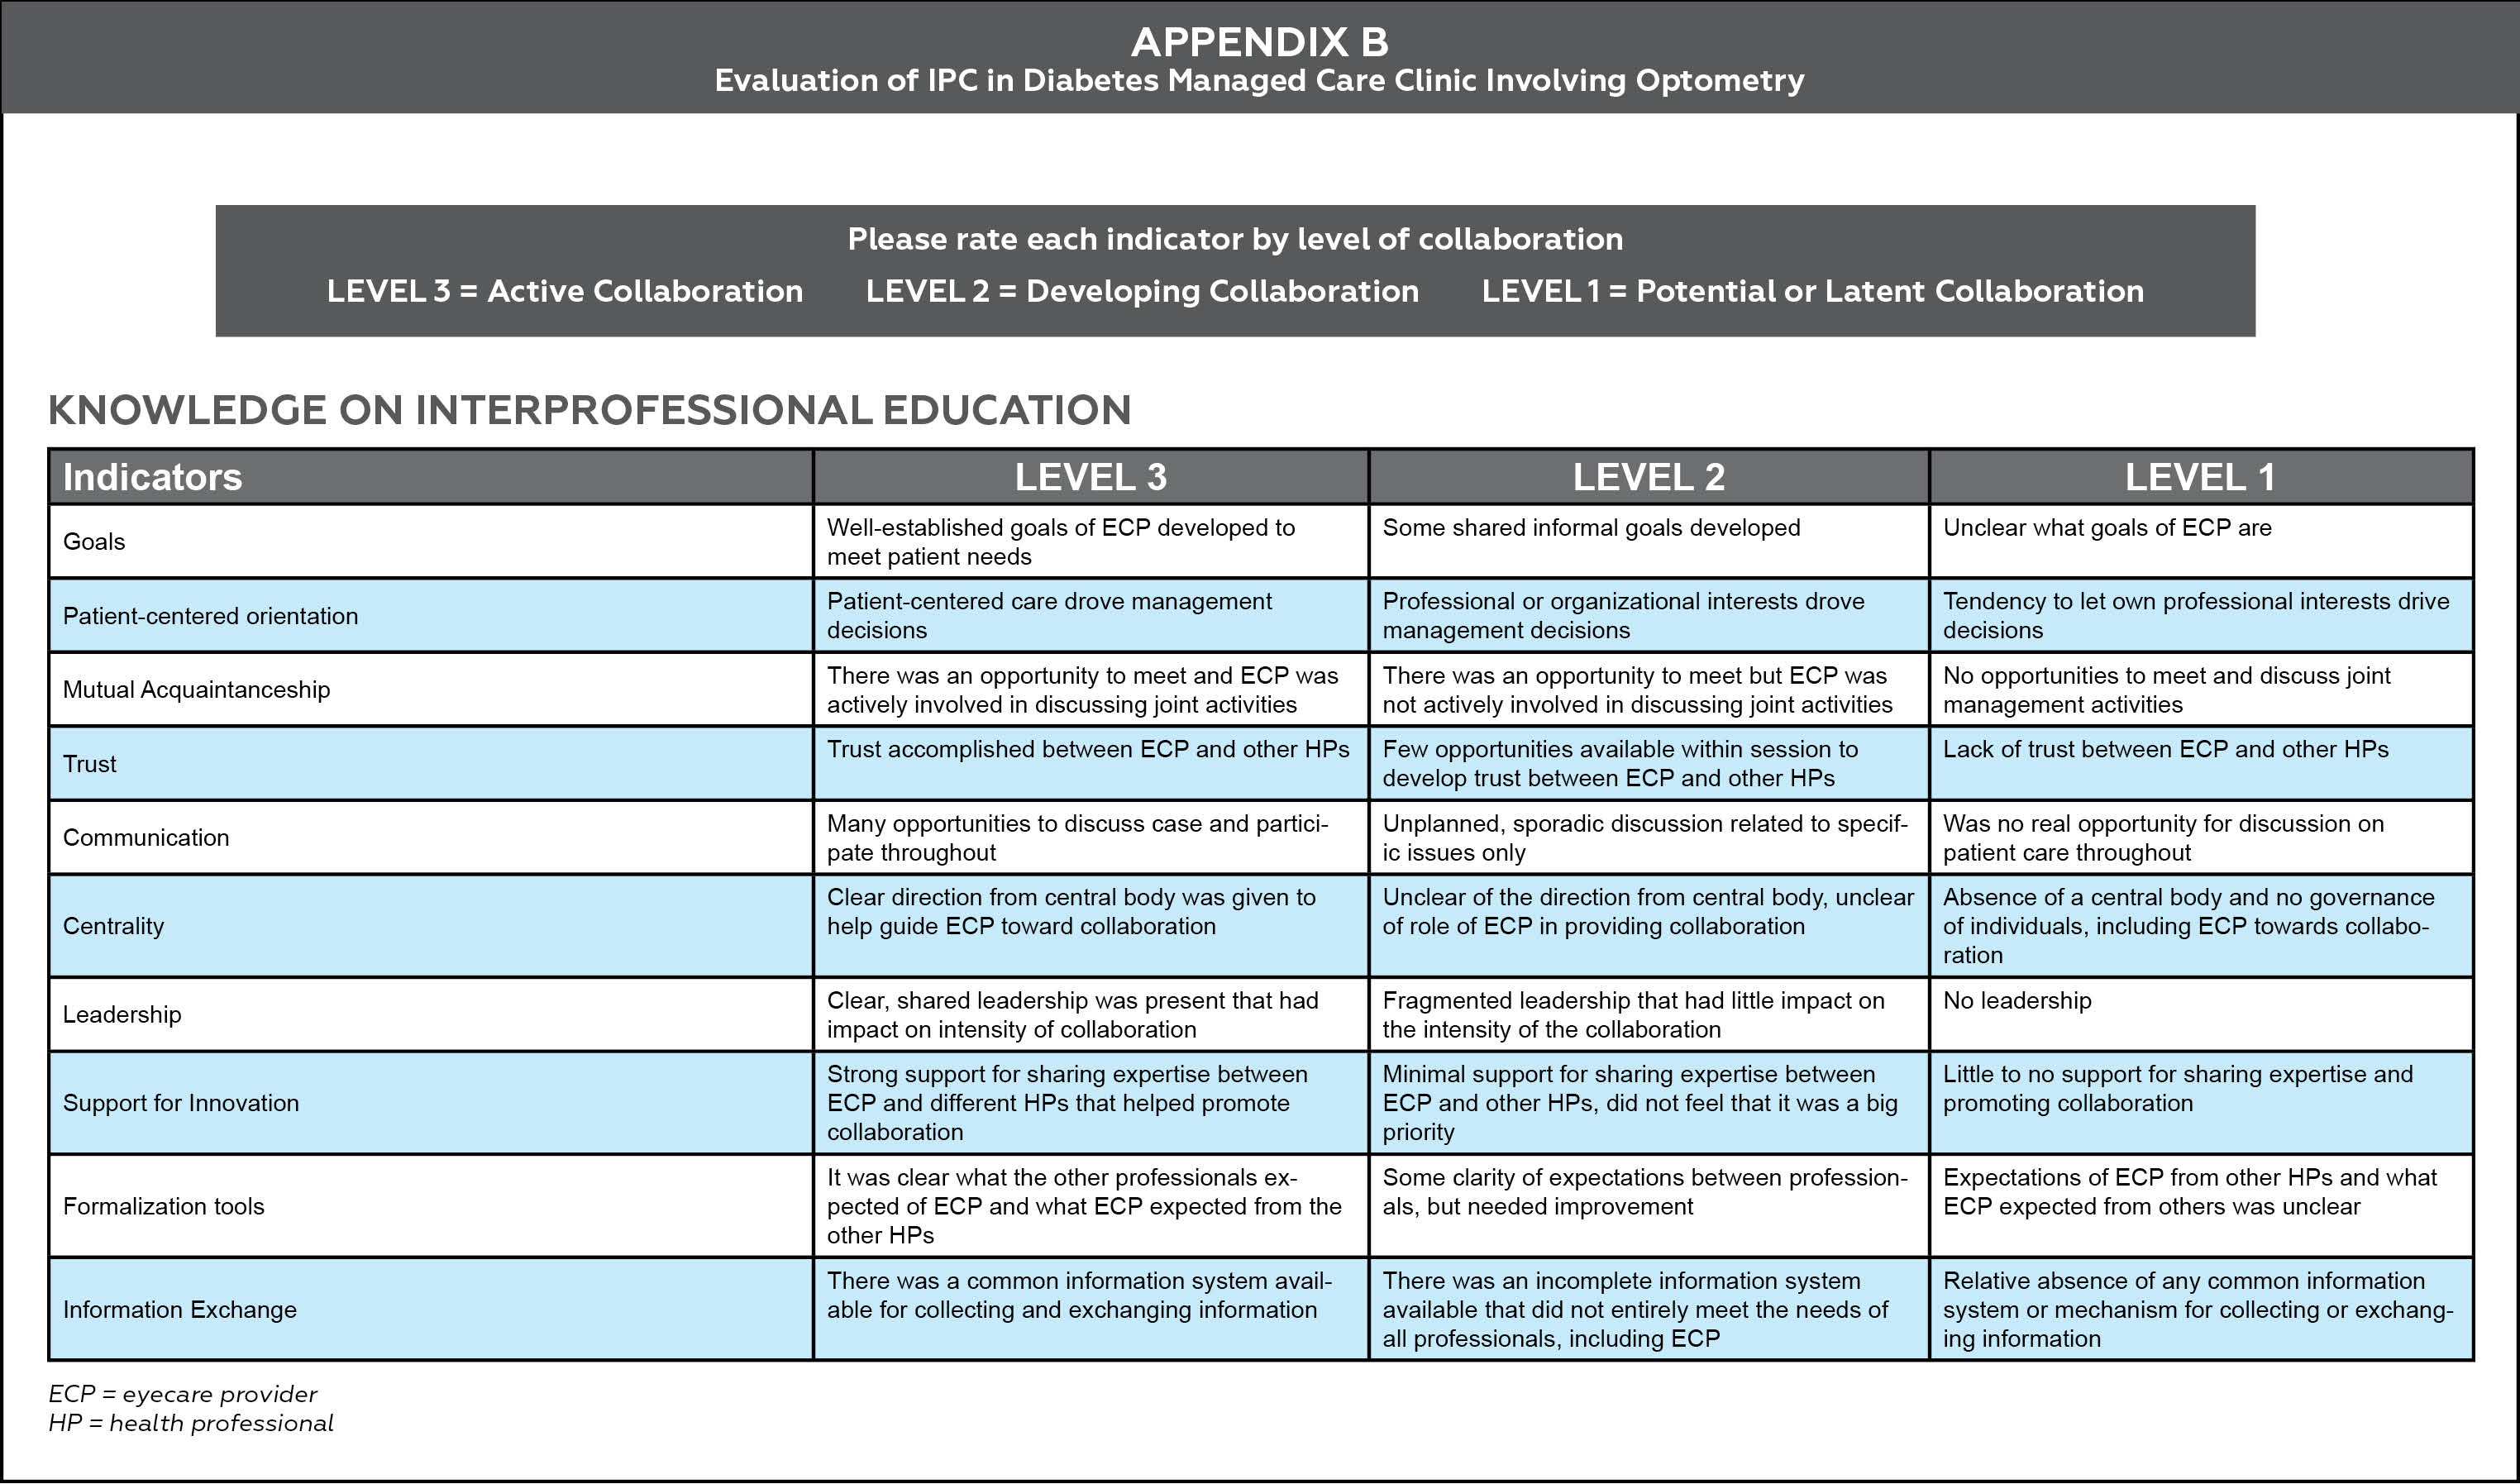 Evaluation Of Interprofessional Education And Collaboration In